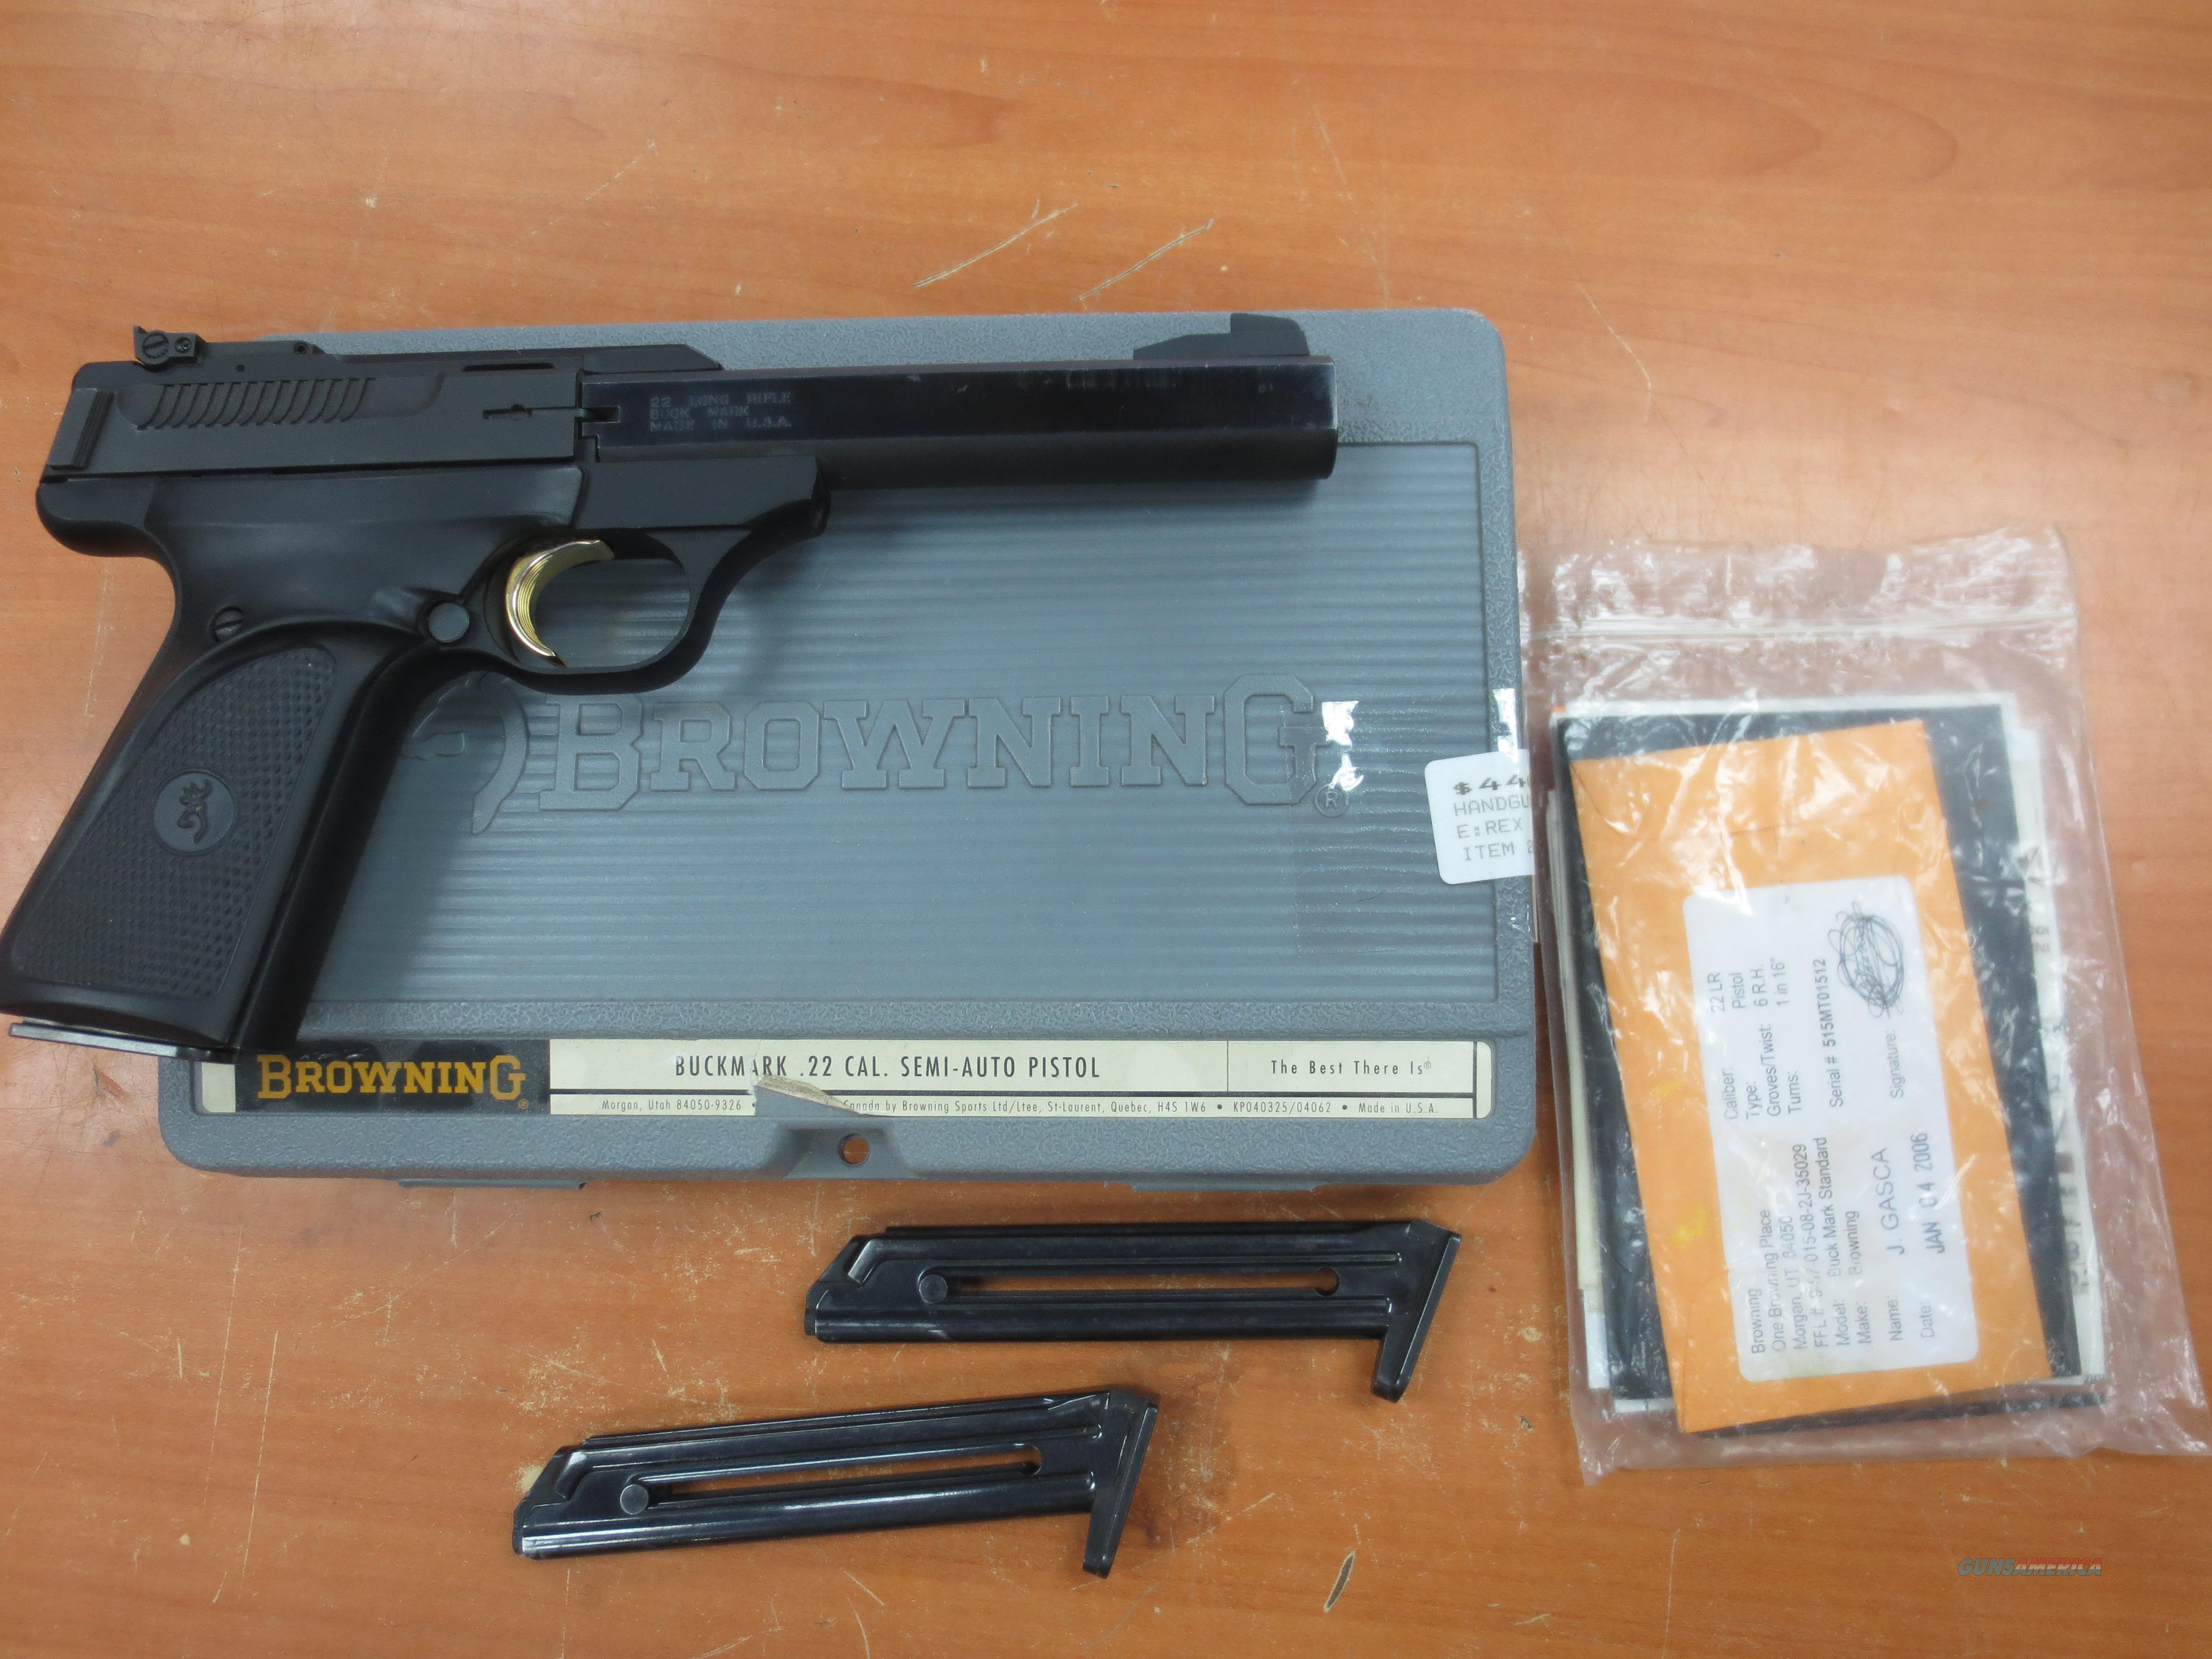 Browning Buckmark .22 LR with 3 magazines  Guns > Pistols > Browning Pistols > Buckmark